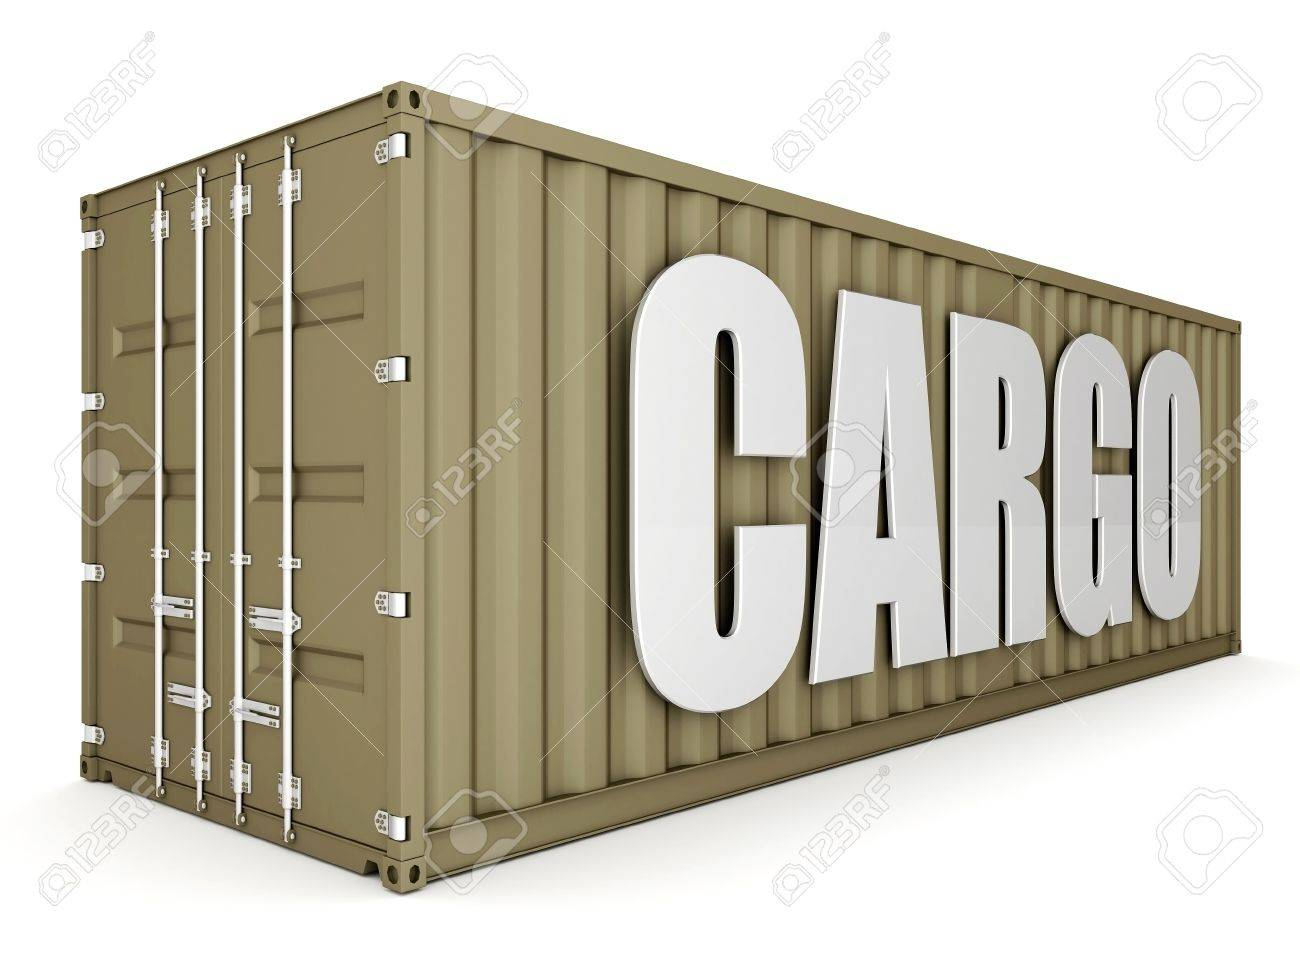 image of the shipping container on a white background Stock Photo - 10554993